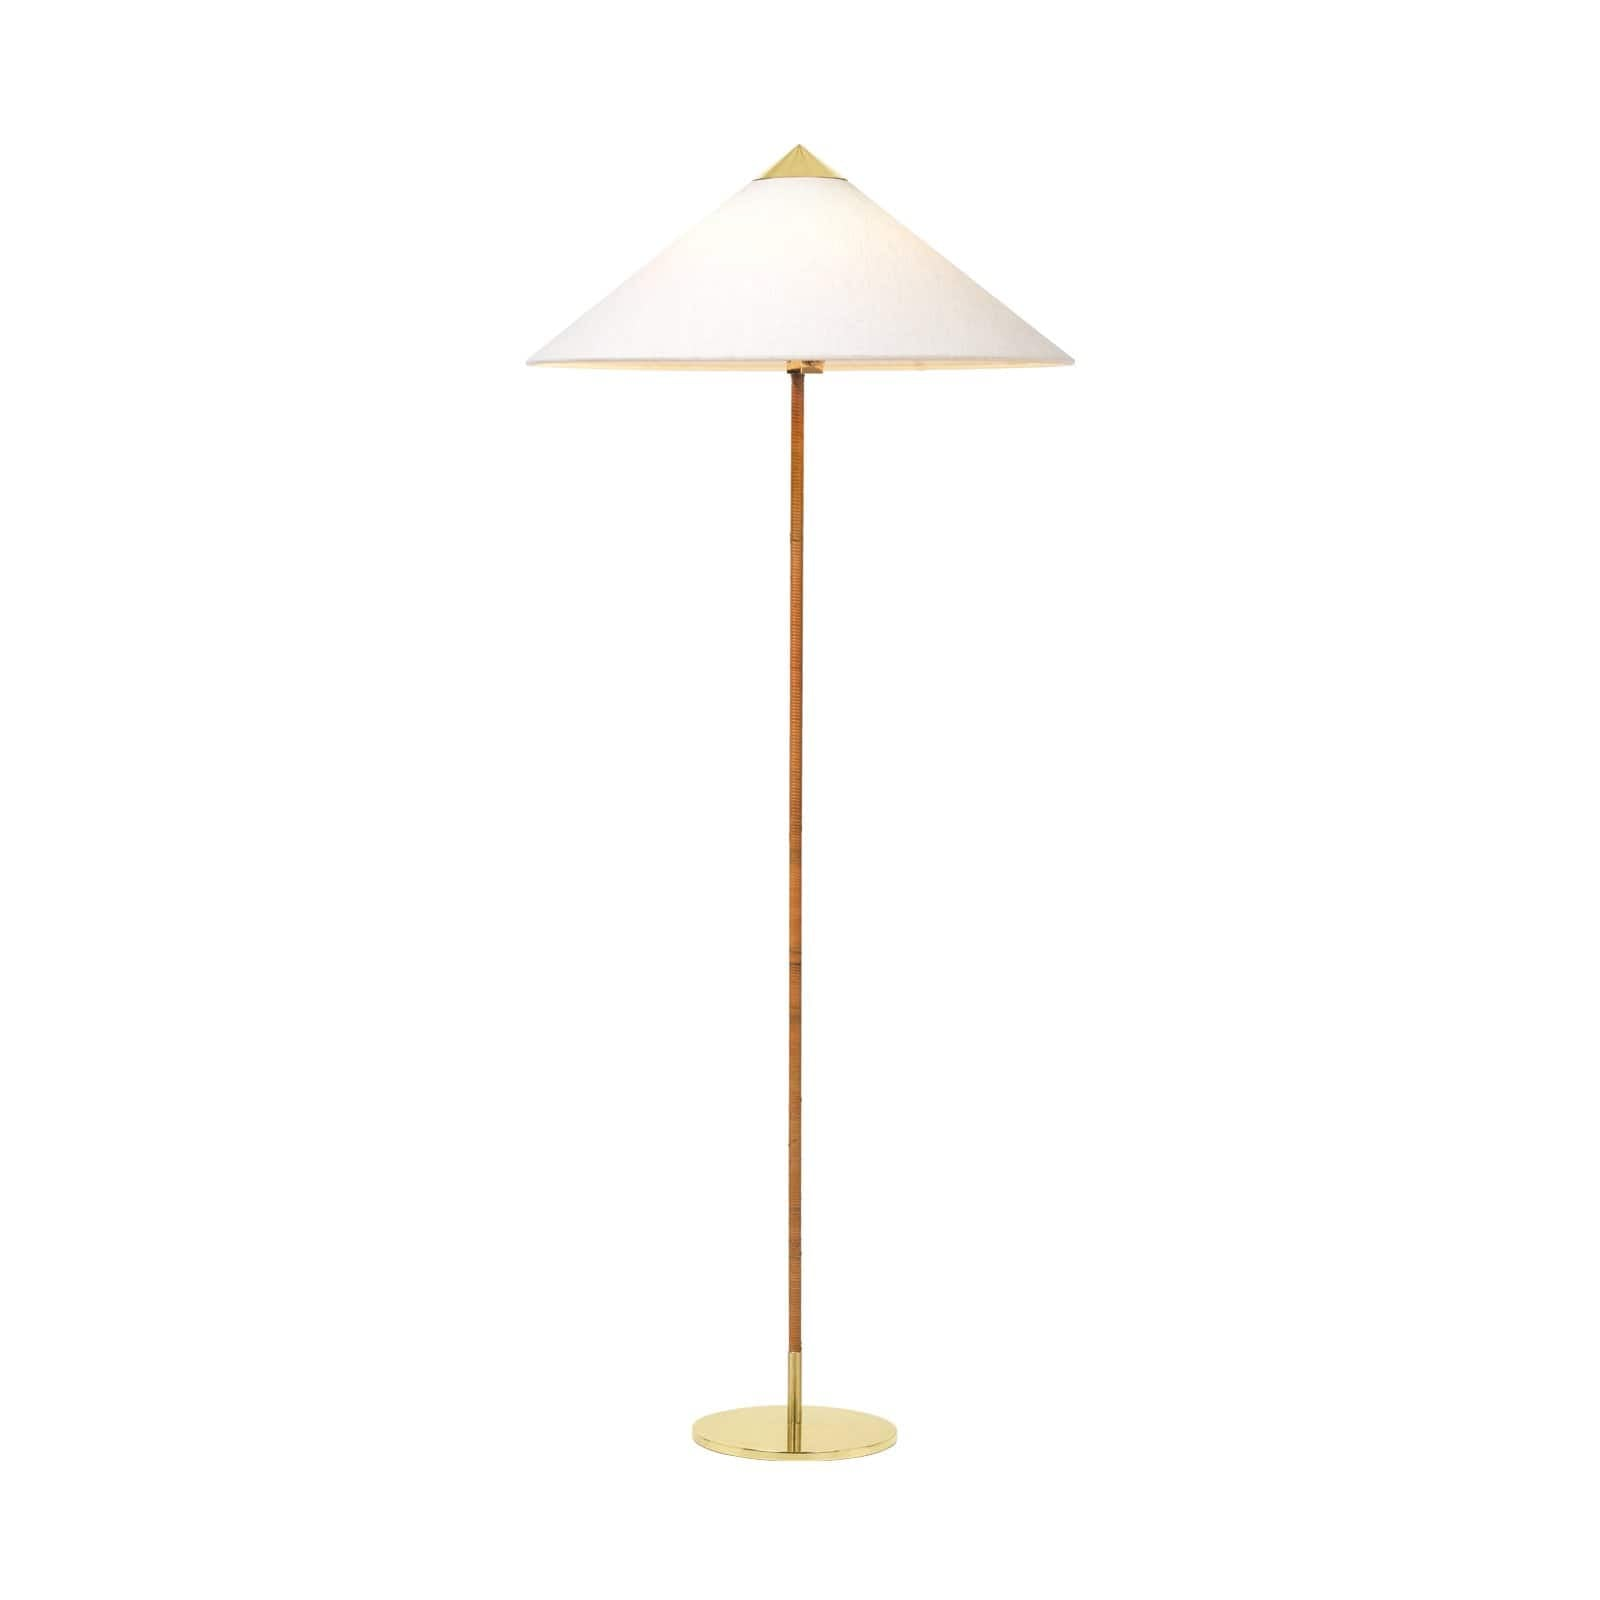 Gubi Lighting Canvas 9602 Floor Lamp